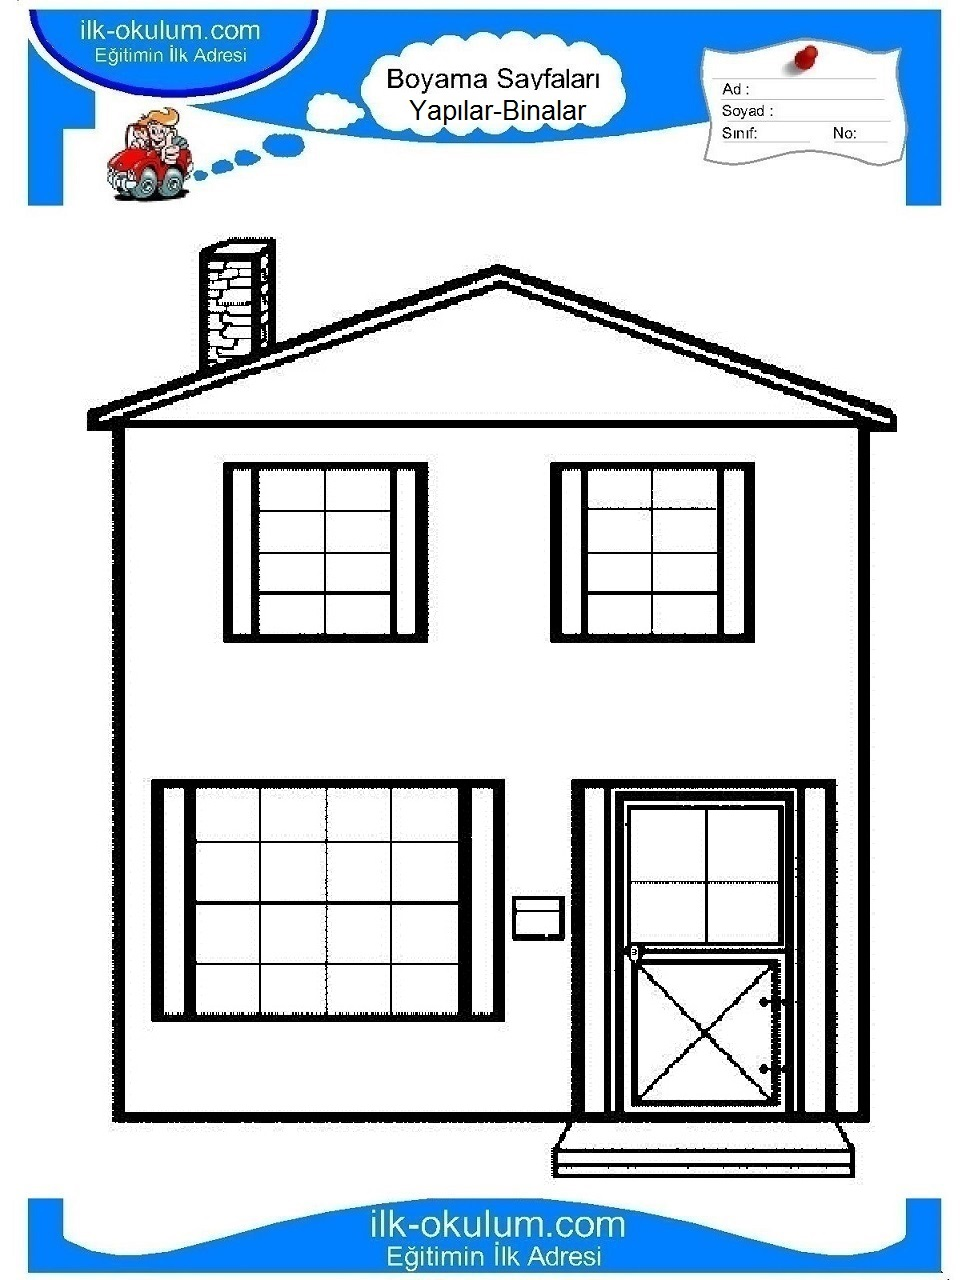 Deep South Dish: Old Fashioned 5 Cup Salad Old fashioned school house coloring page